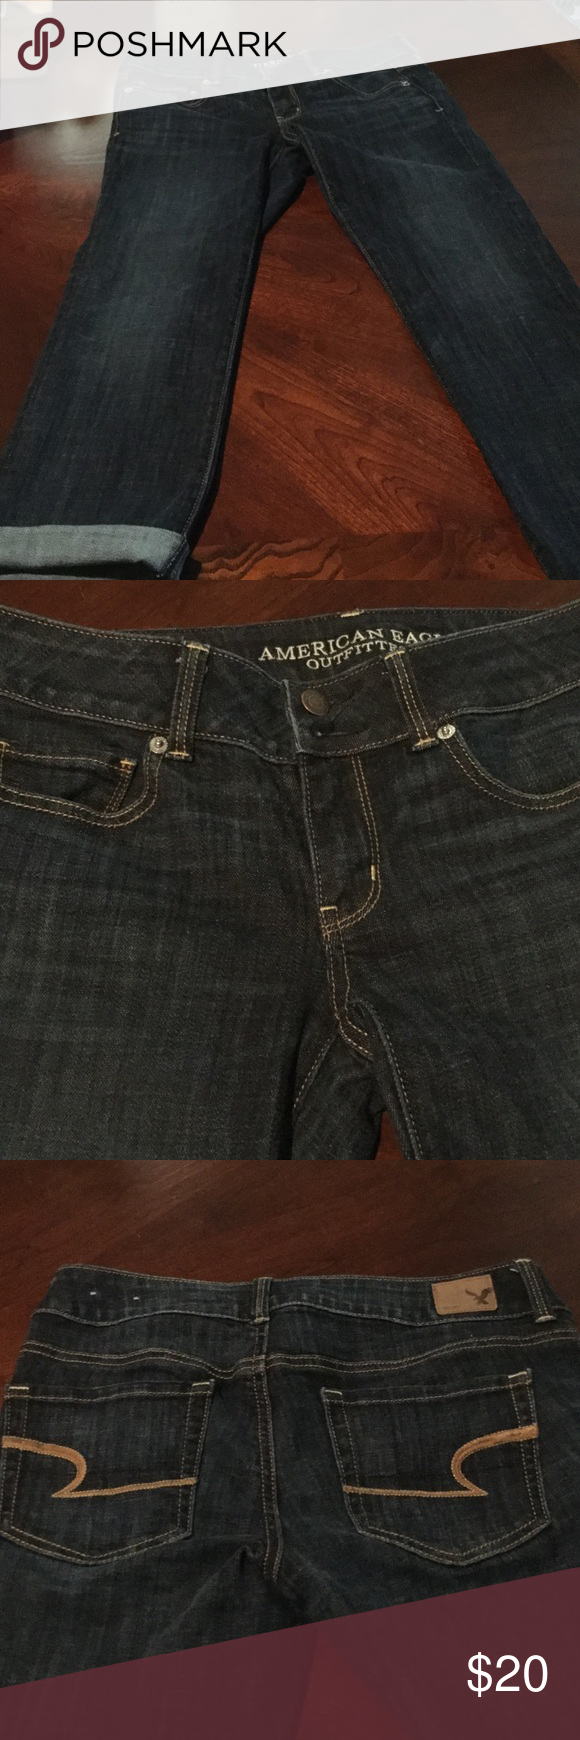 American Eagle Jeans These jeans are American Eagle Artist Skinny Crop .They are like new and they are a size 4 and they were purchase at the AE store. American Eagle Outfitters Jeans Ankle & Cropped